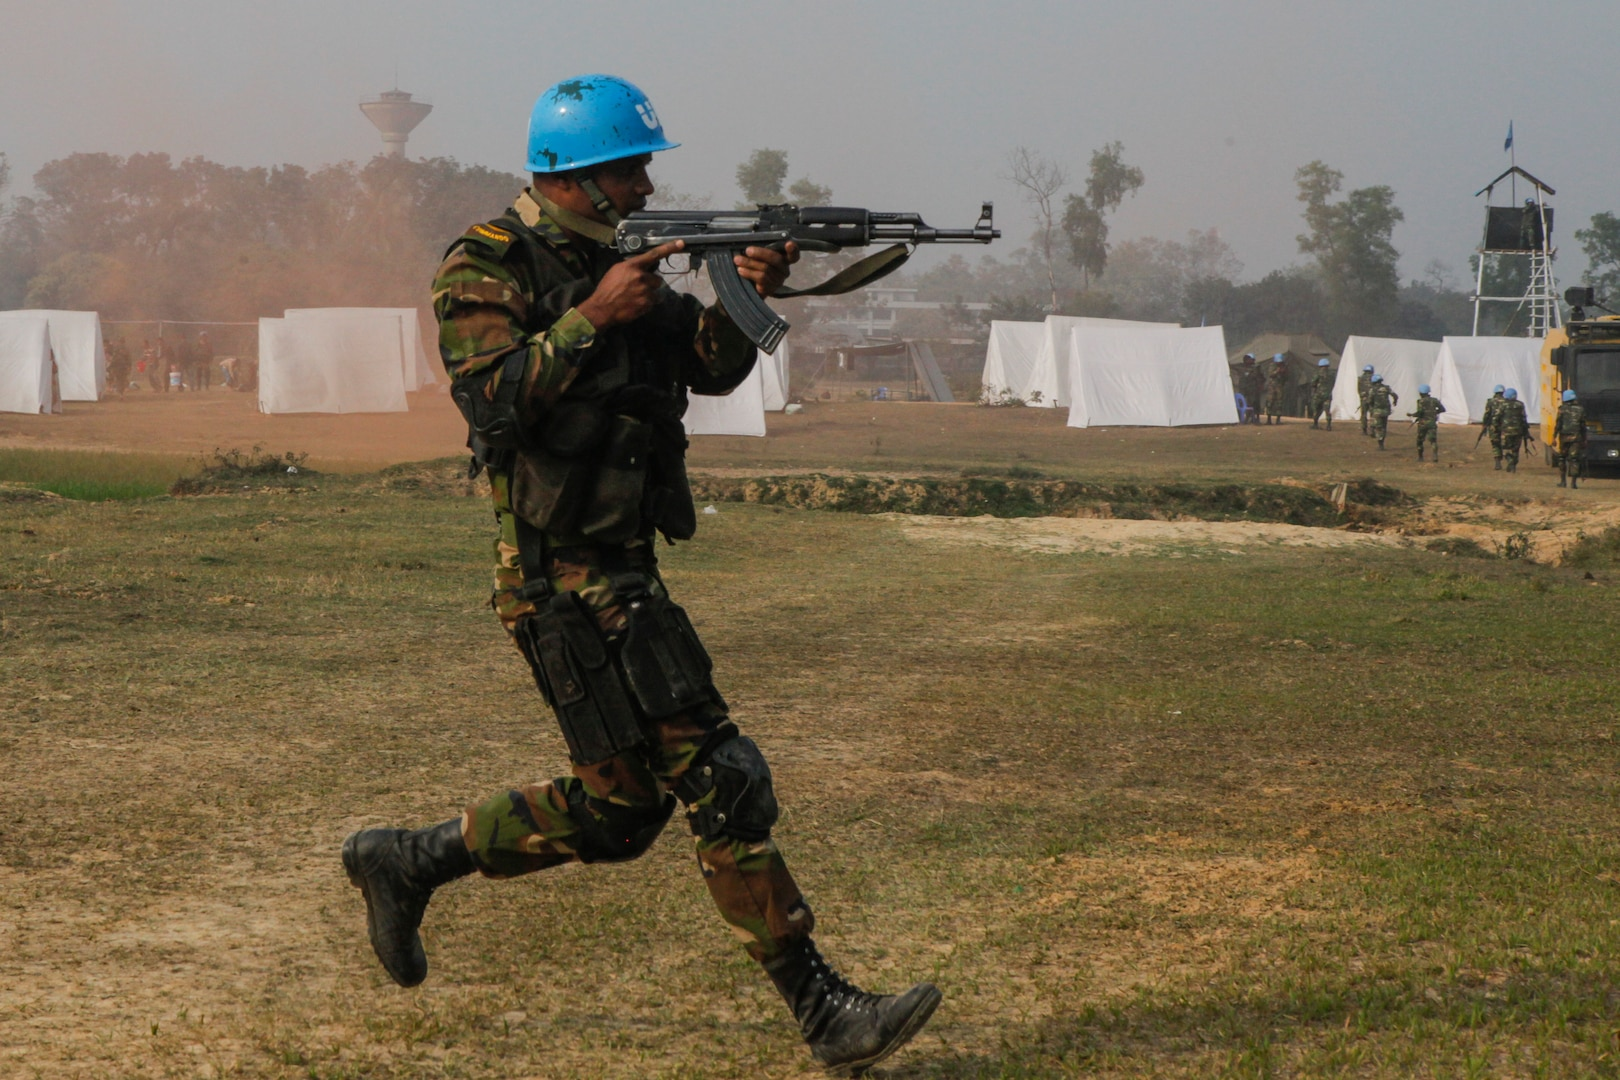 A Bangladesh Army soldier of the Para-Commando Brigade runs to secure a drop zone during a rehearsal for a demonstration as part of Exercise Shanti Doot 4 in Bangladesh.